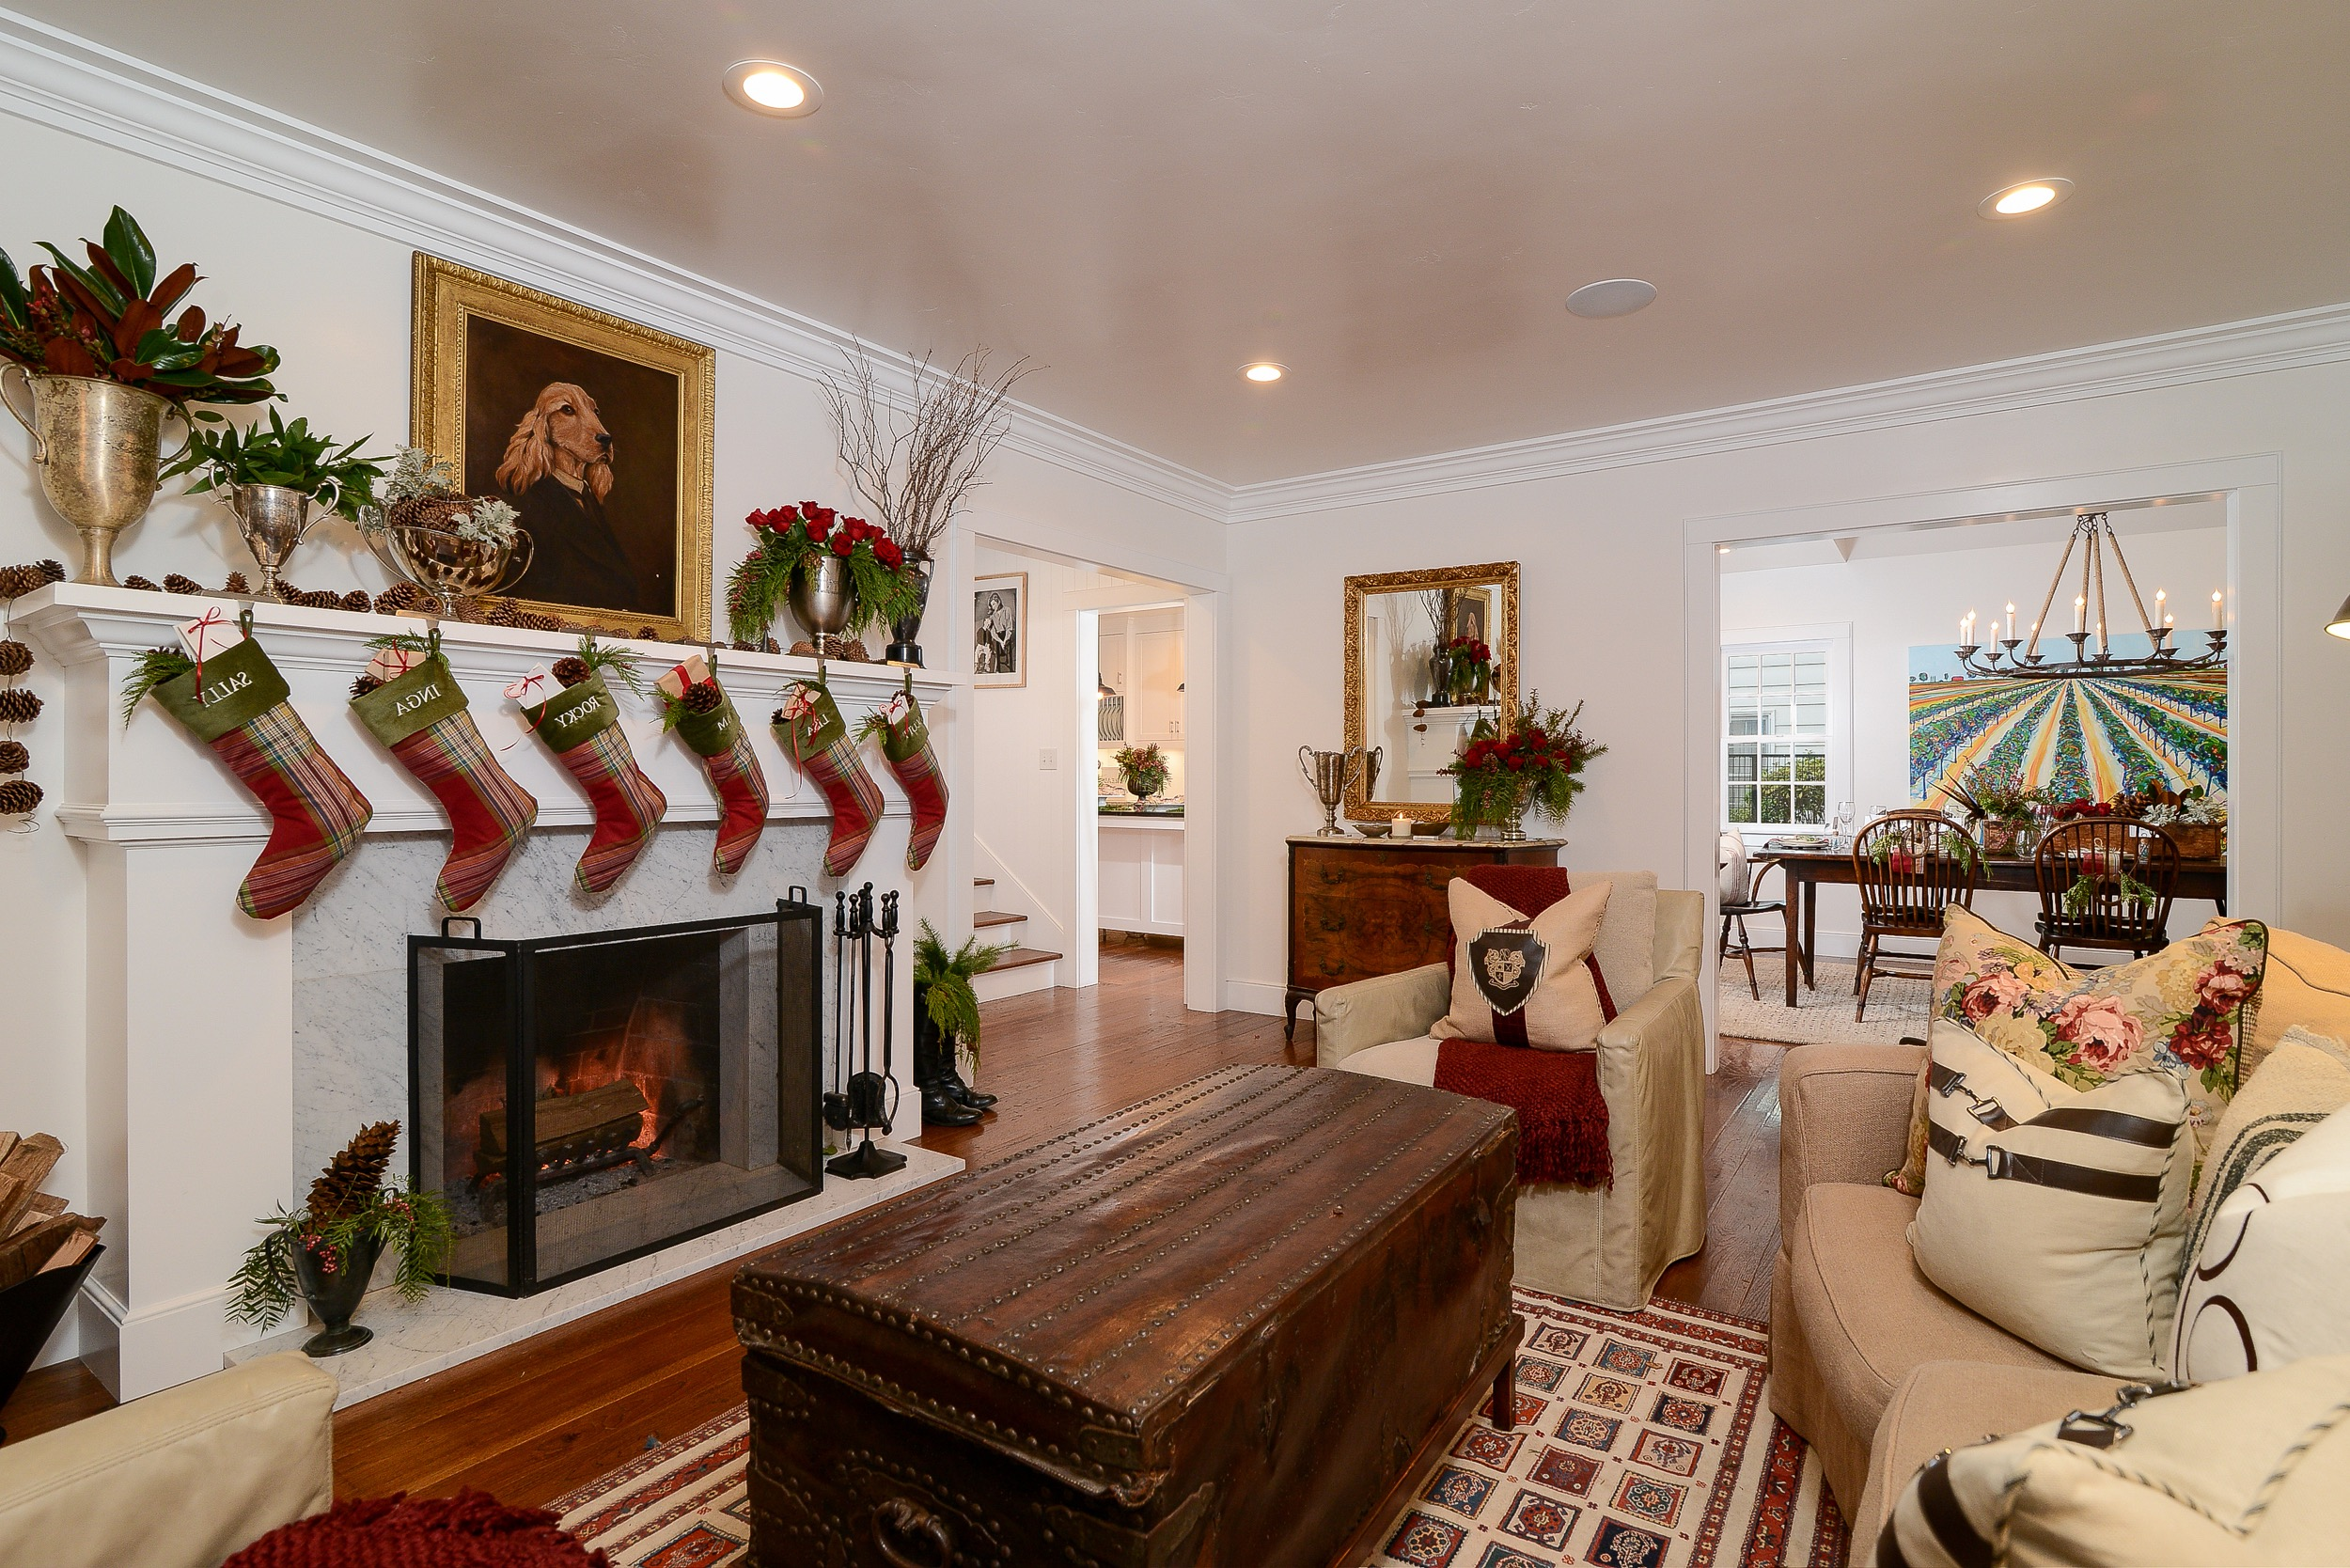 Country Christmas Living Room With Plaid Stockings (View 10 of 18)